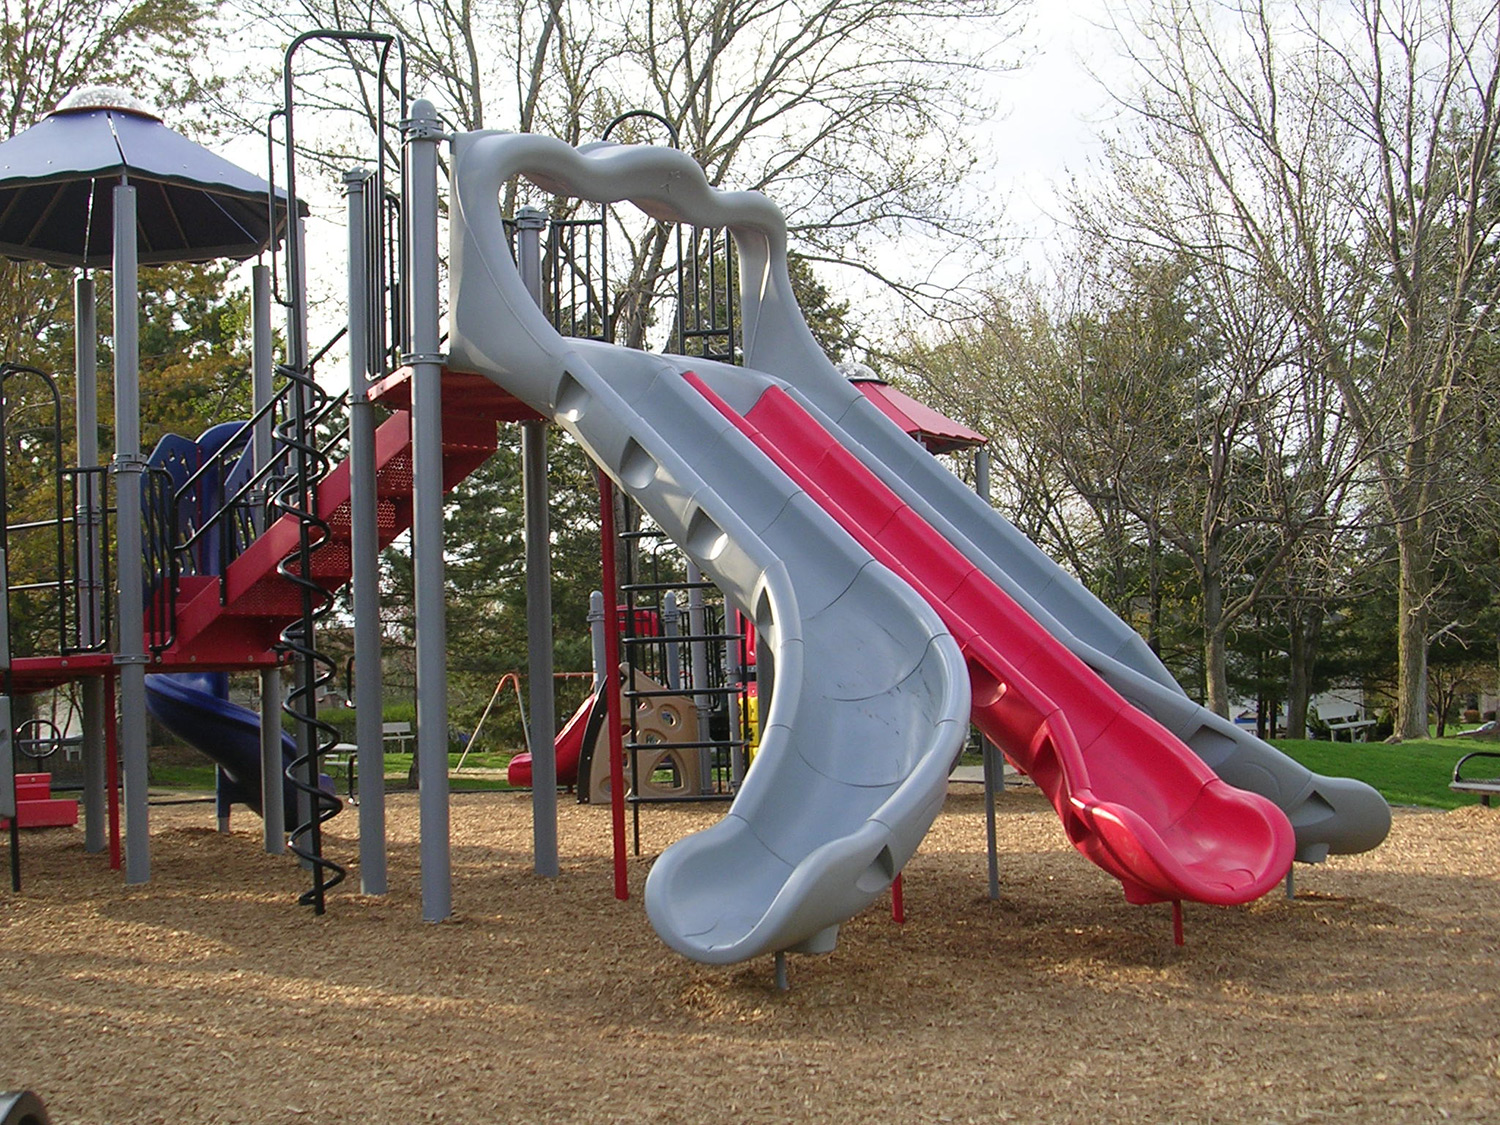 Situated with nearby trees, the playground also includes several sets of swings.